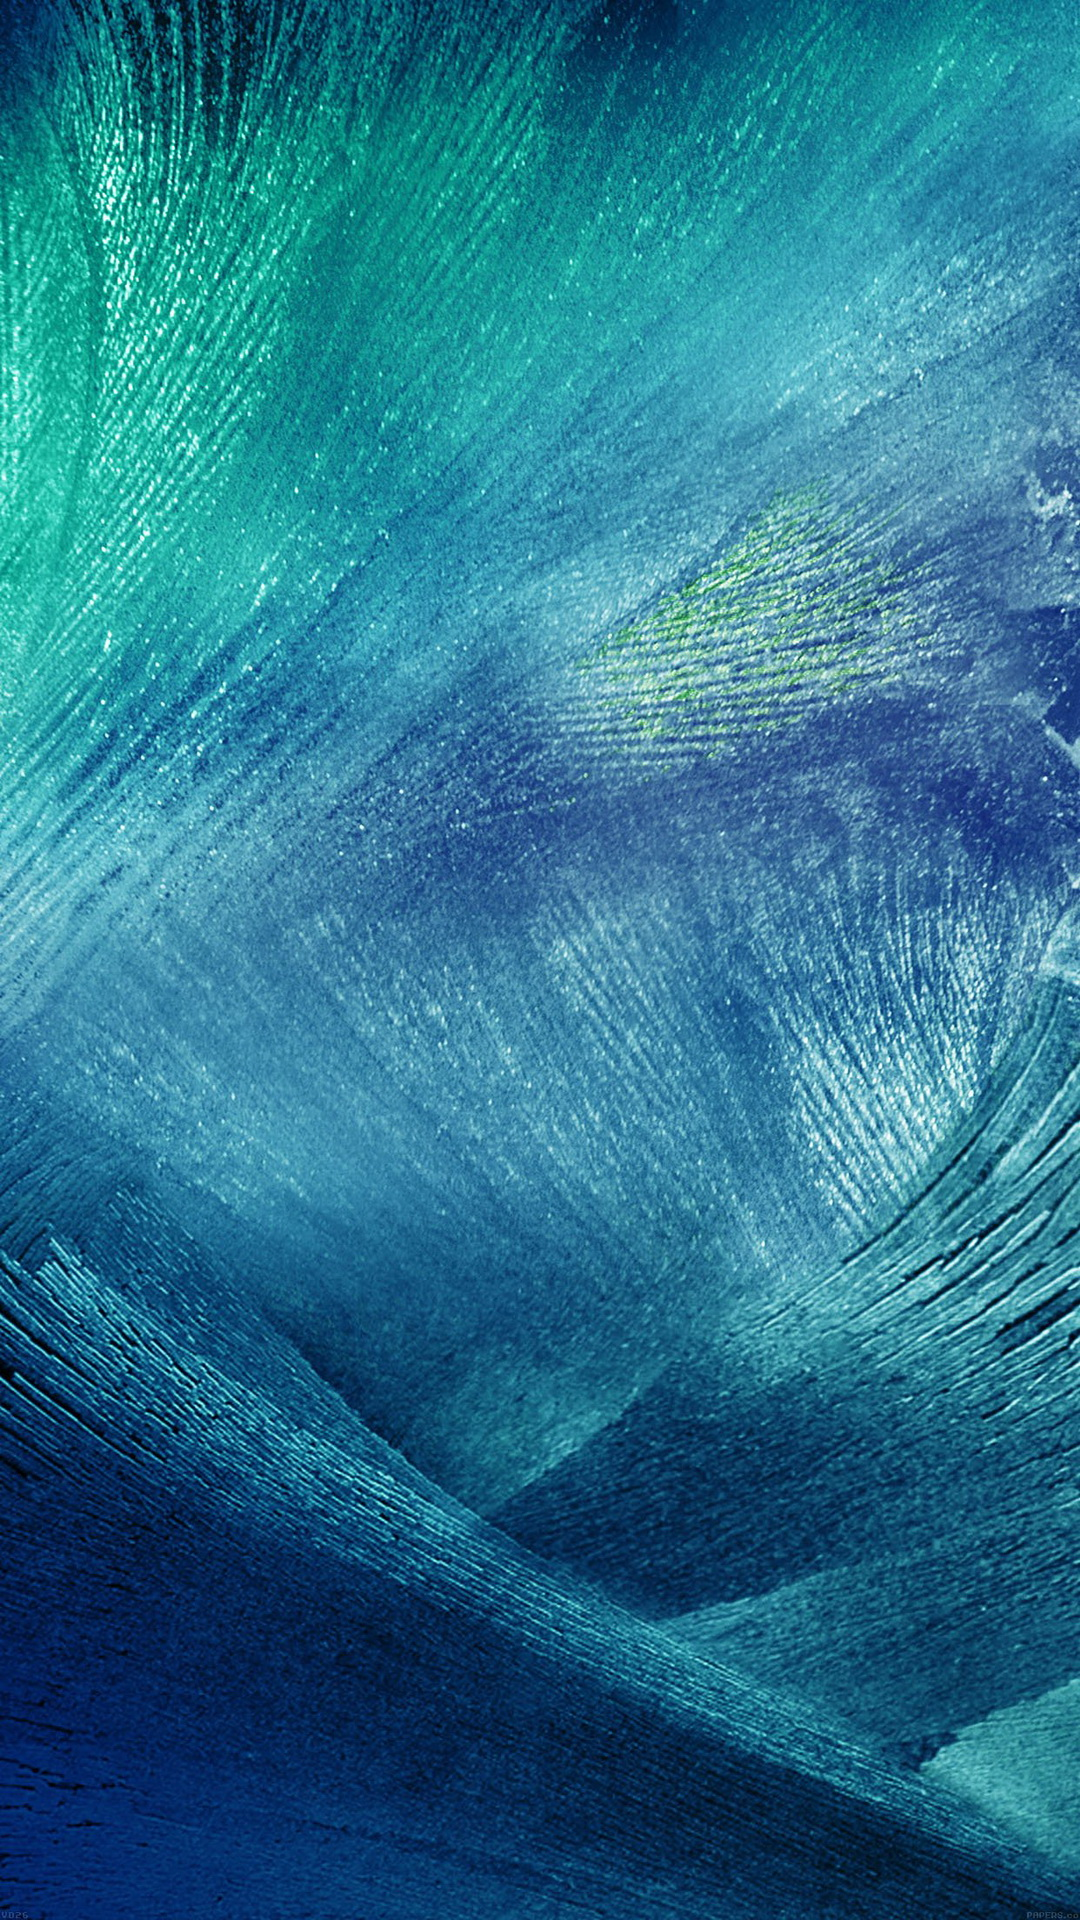 Blue Icy texture